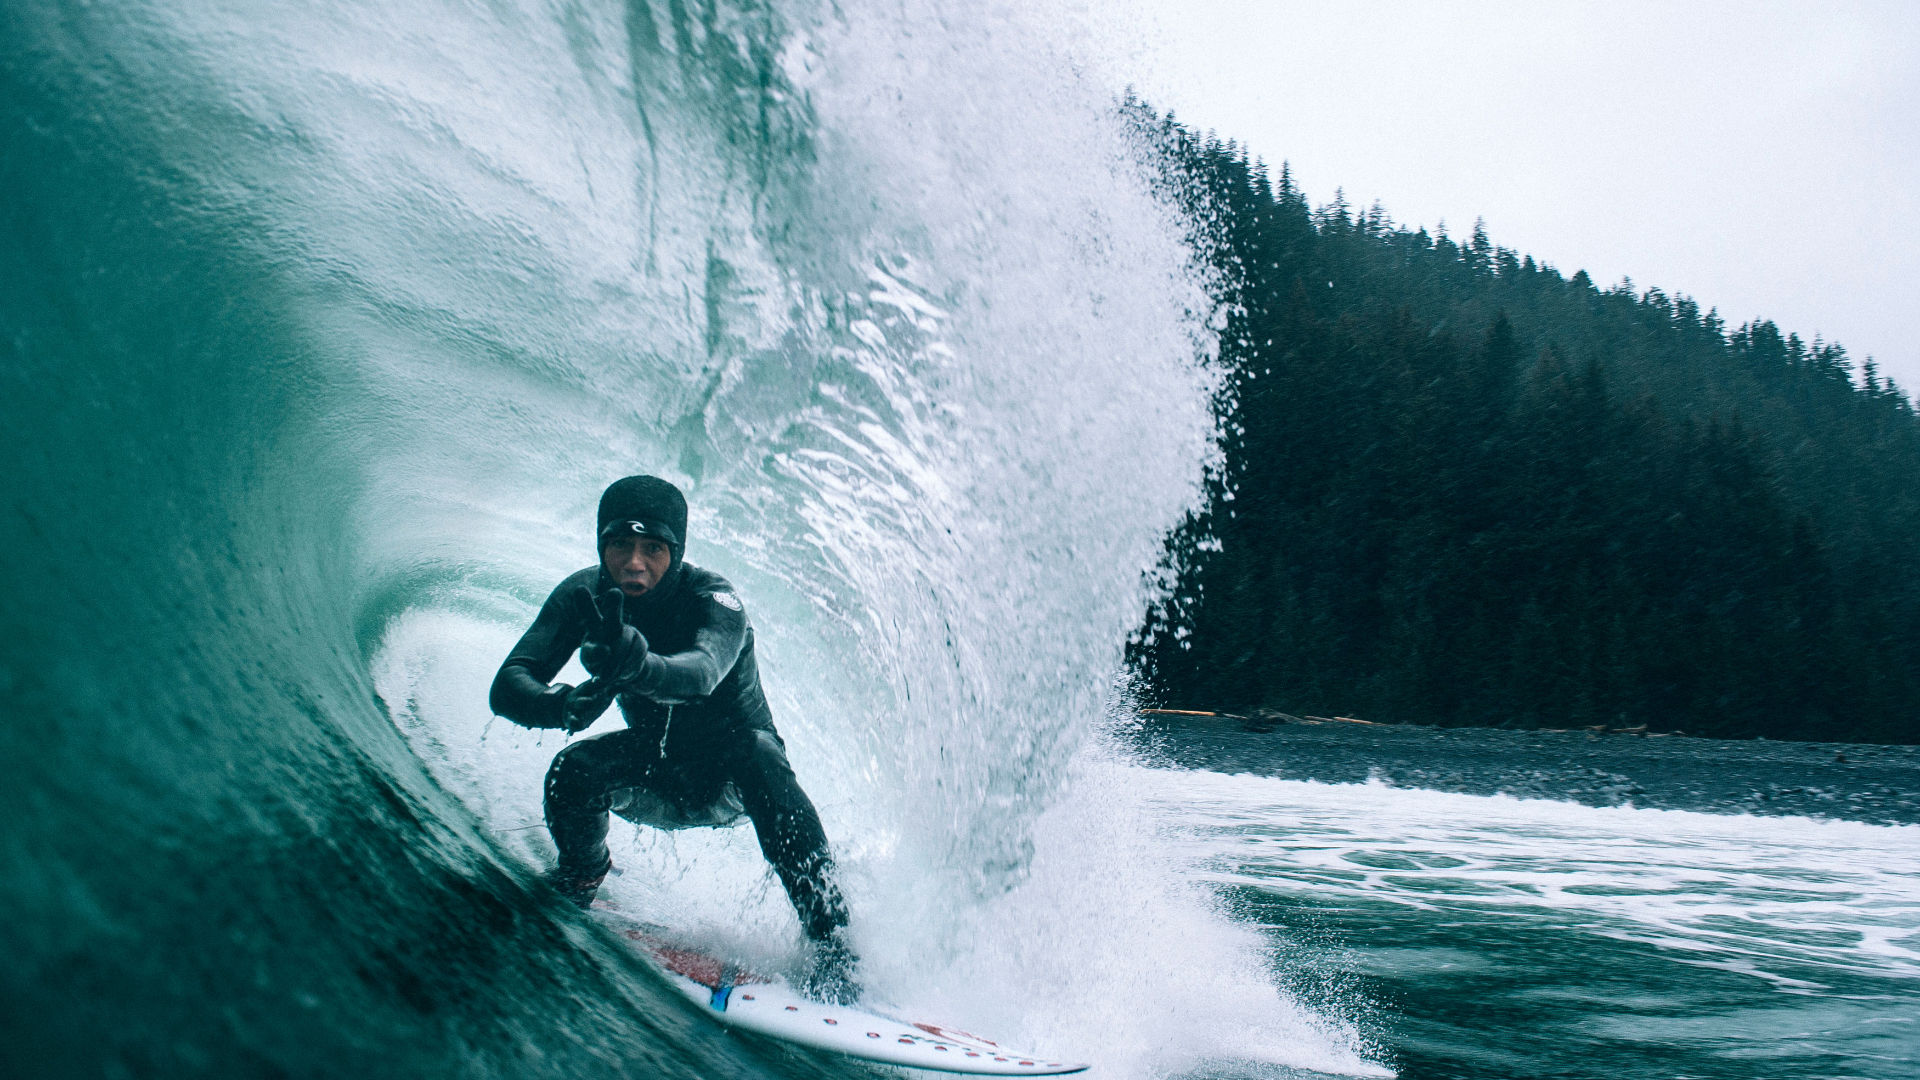 Surfer in Alaskan cold waters with booties and a hood